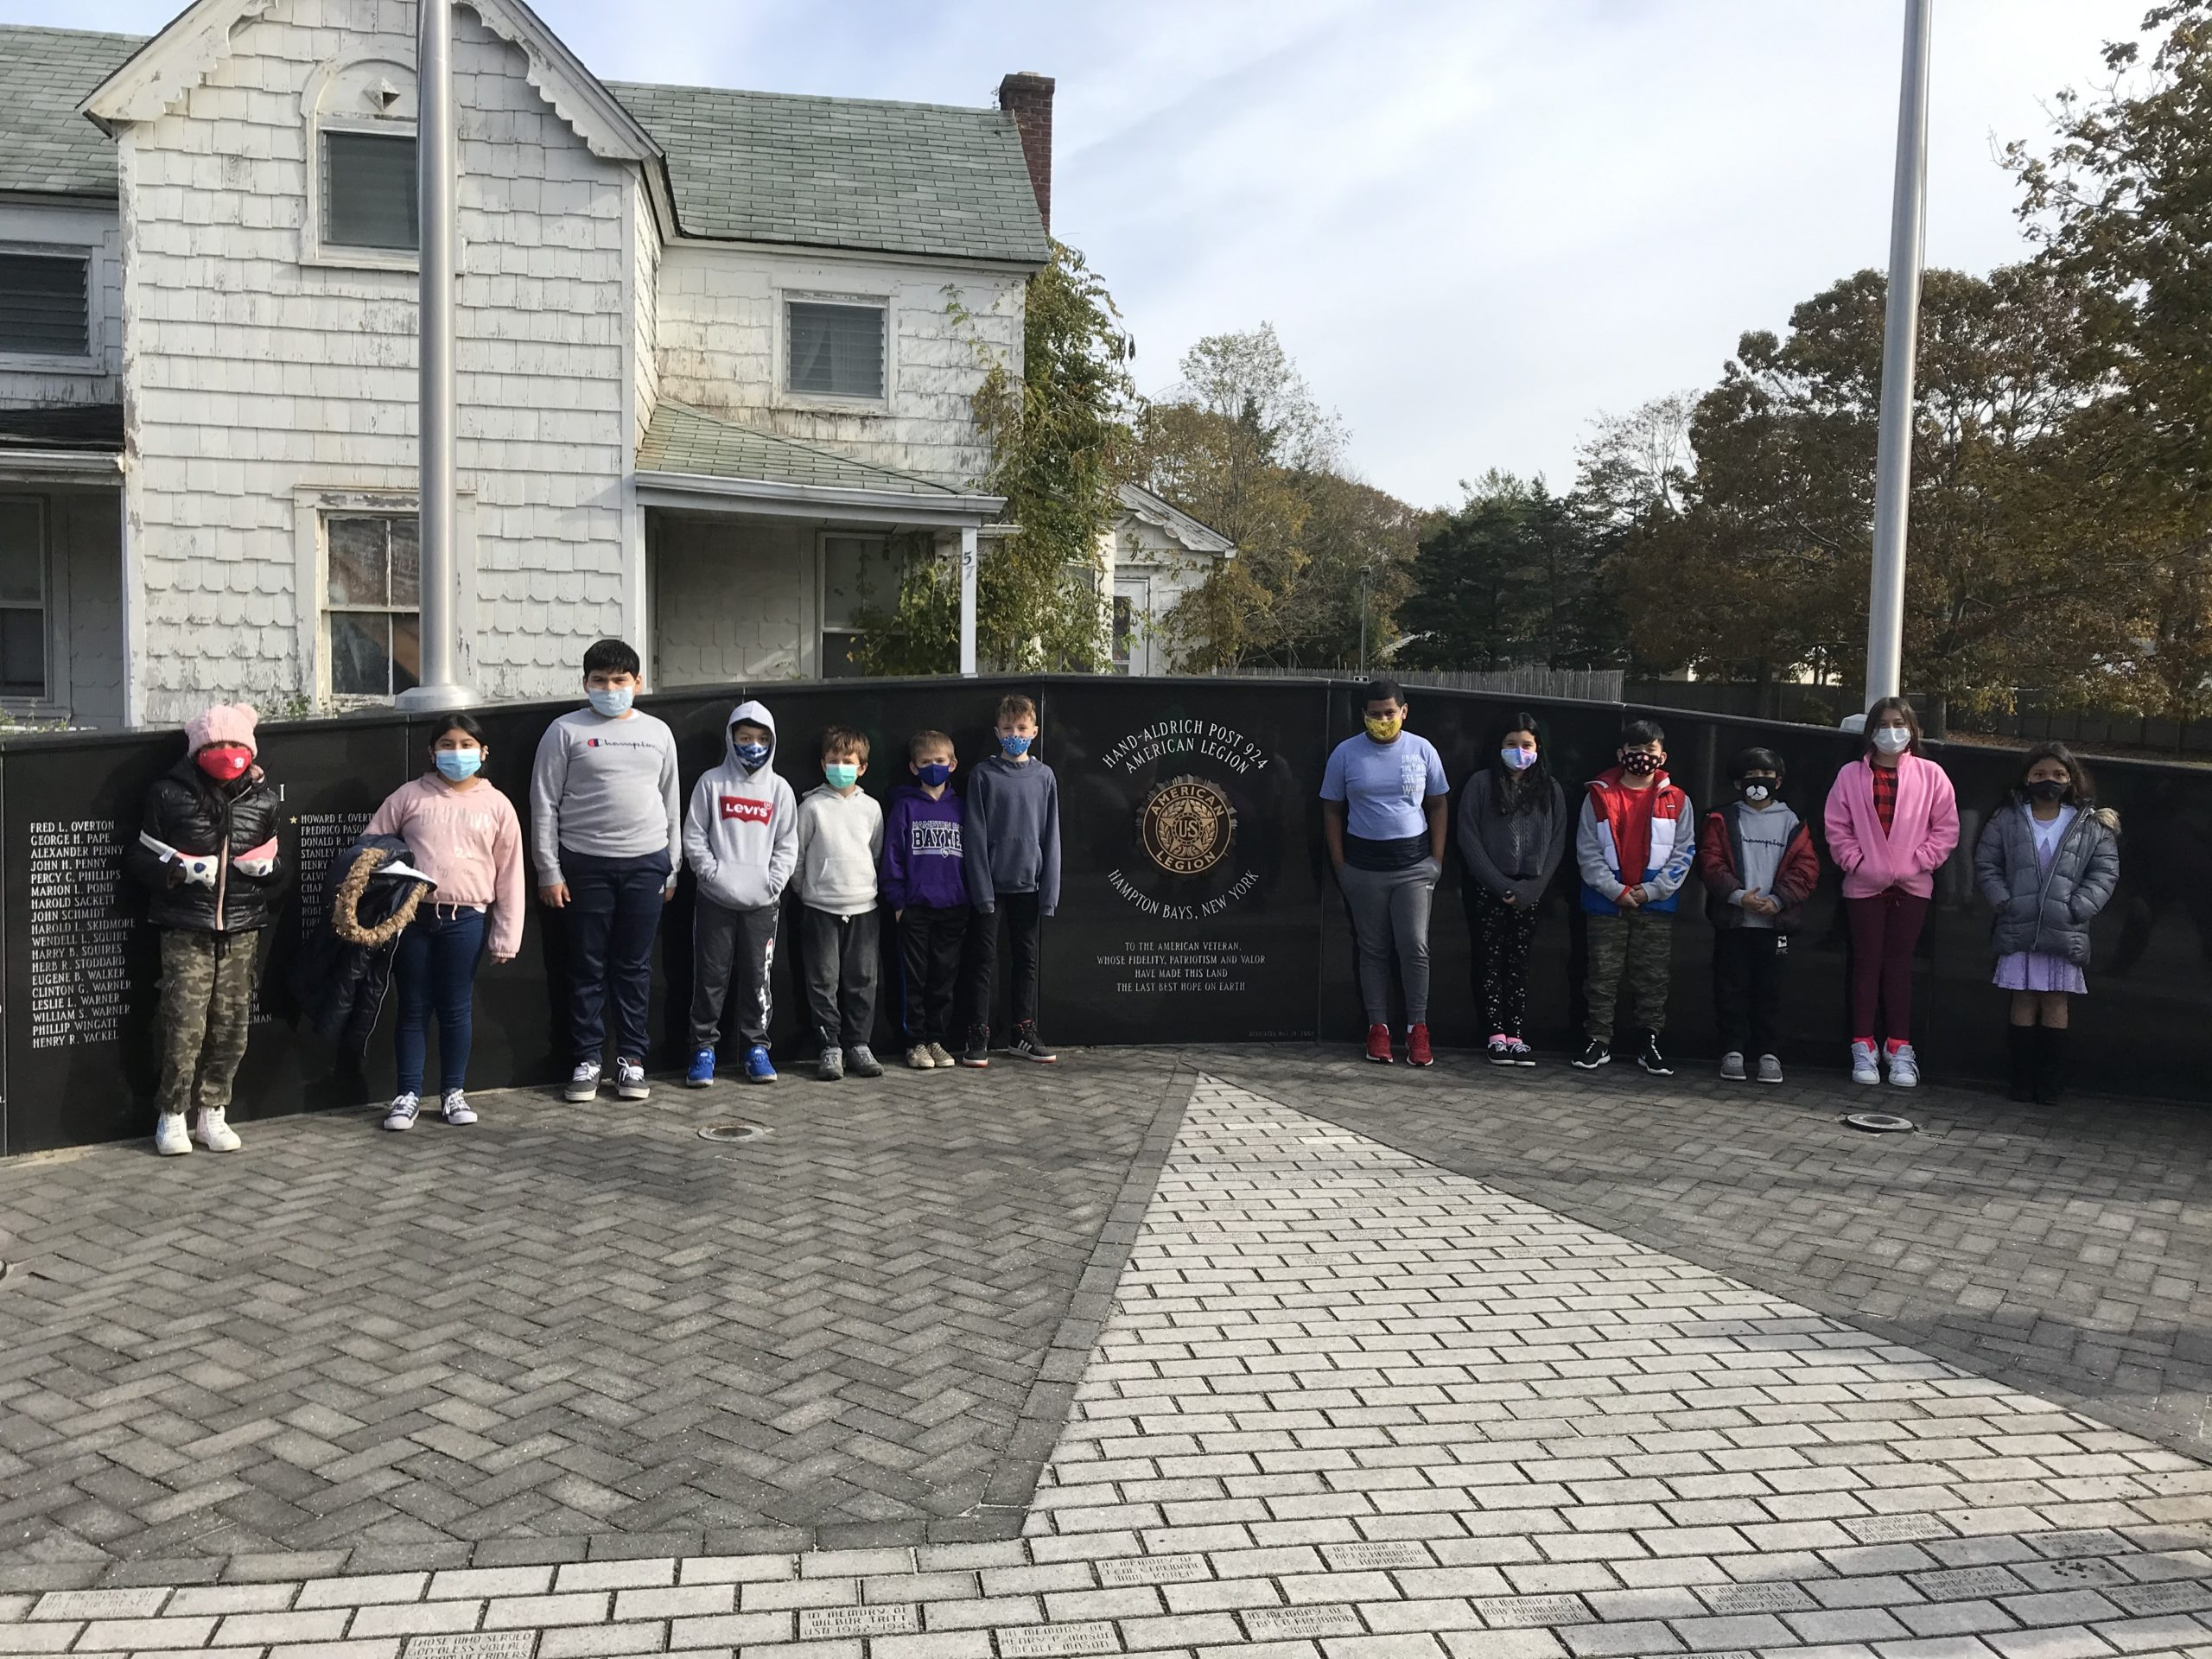 As part of a Veterans Day celebration, fourth grade students at Hampton Bays Elementary School took a walking field trip to the community's veterans memorial at the American Legion Post 924 on Ponquogue Avenue. Students learned more about the memorial and spent time speaking with local veterans.